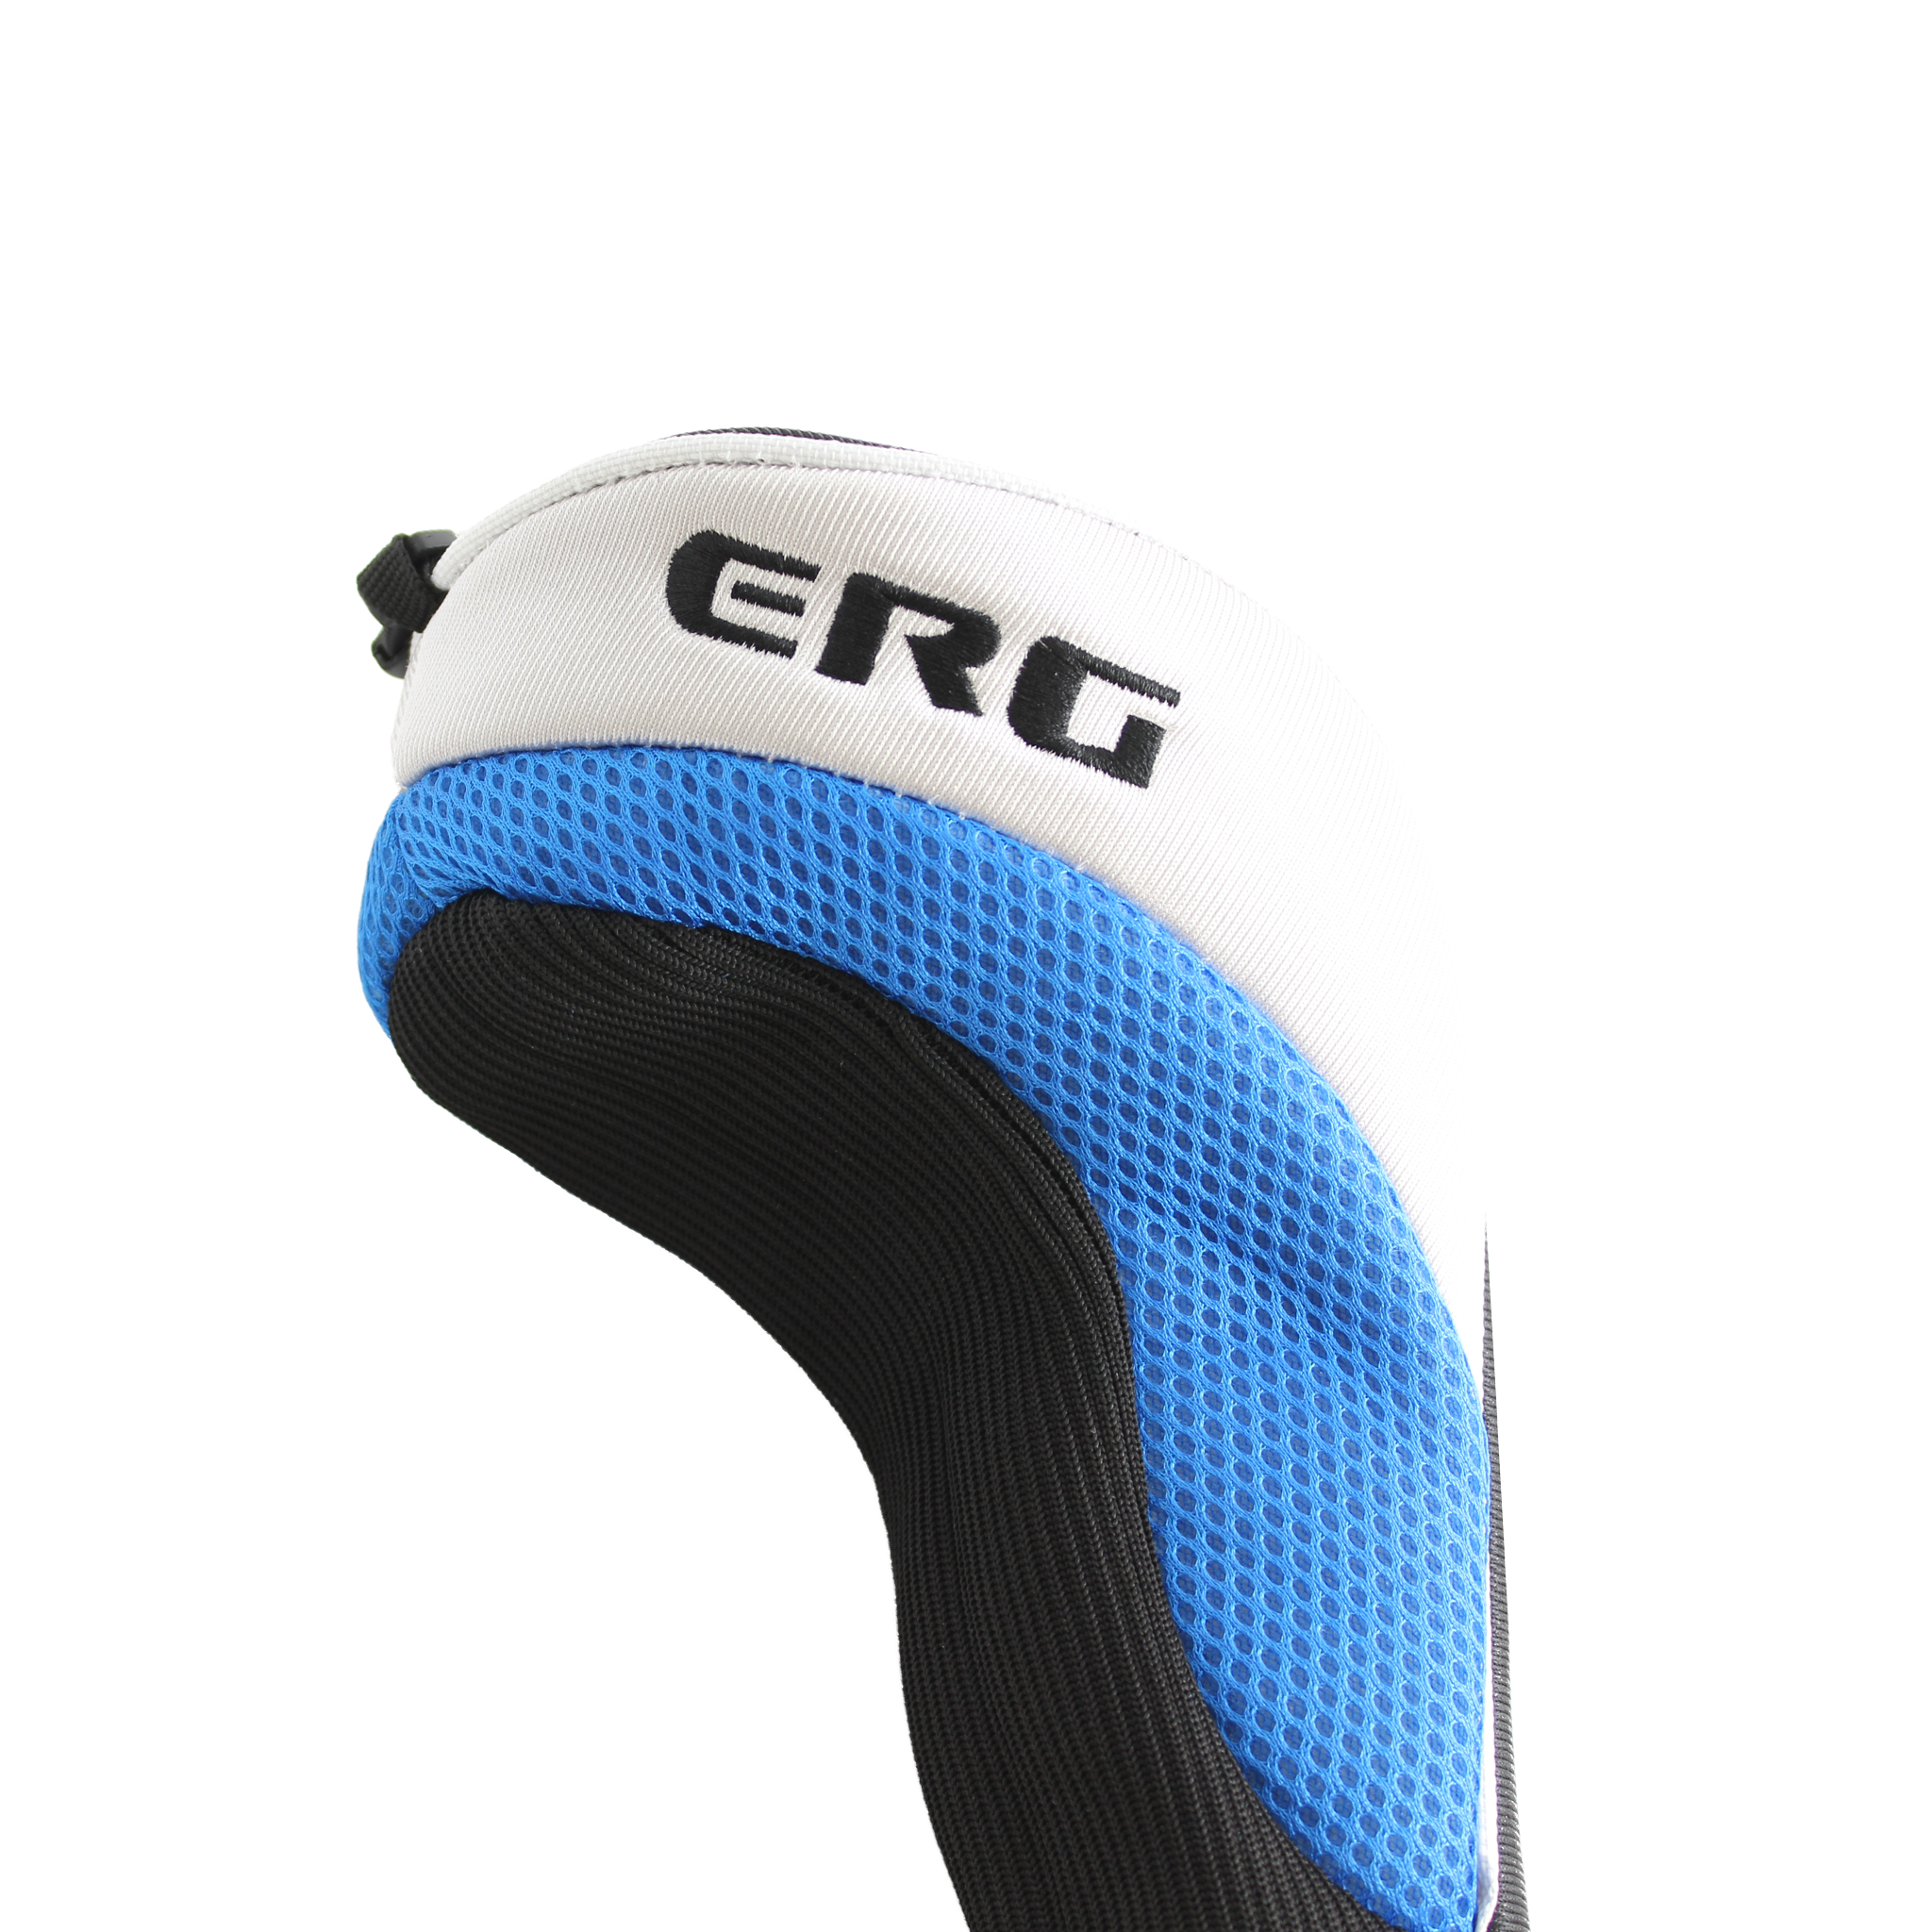 ERG Knit Driver Golf Headcover - Eagle Rebirth Golf